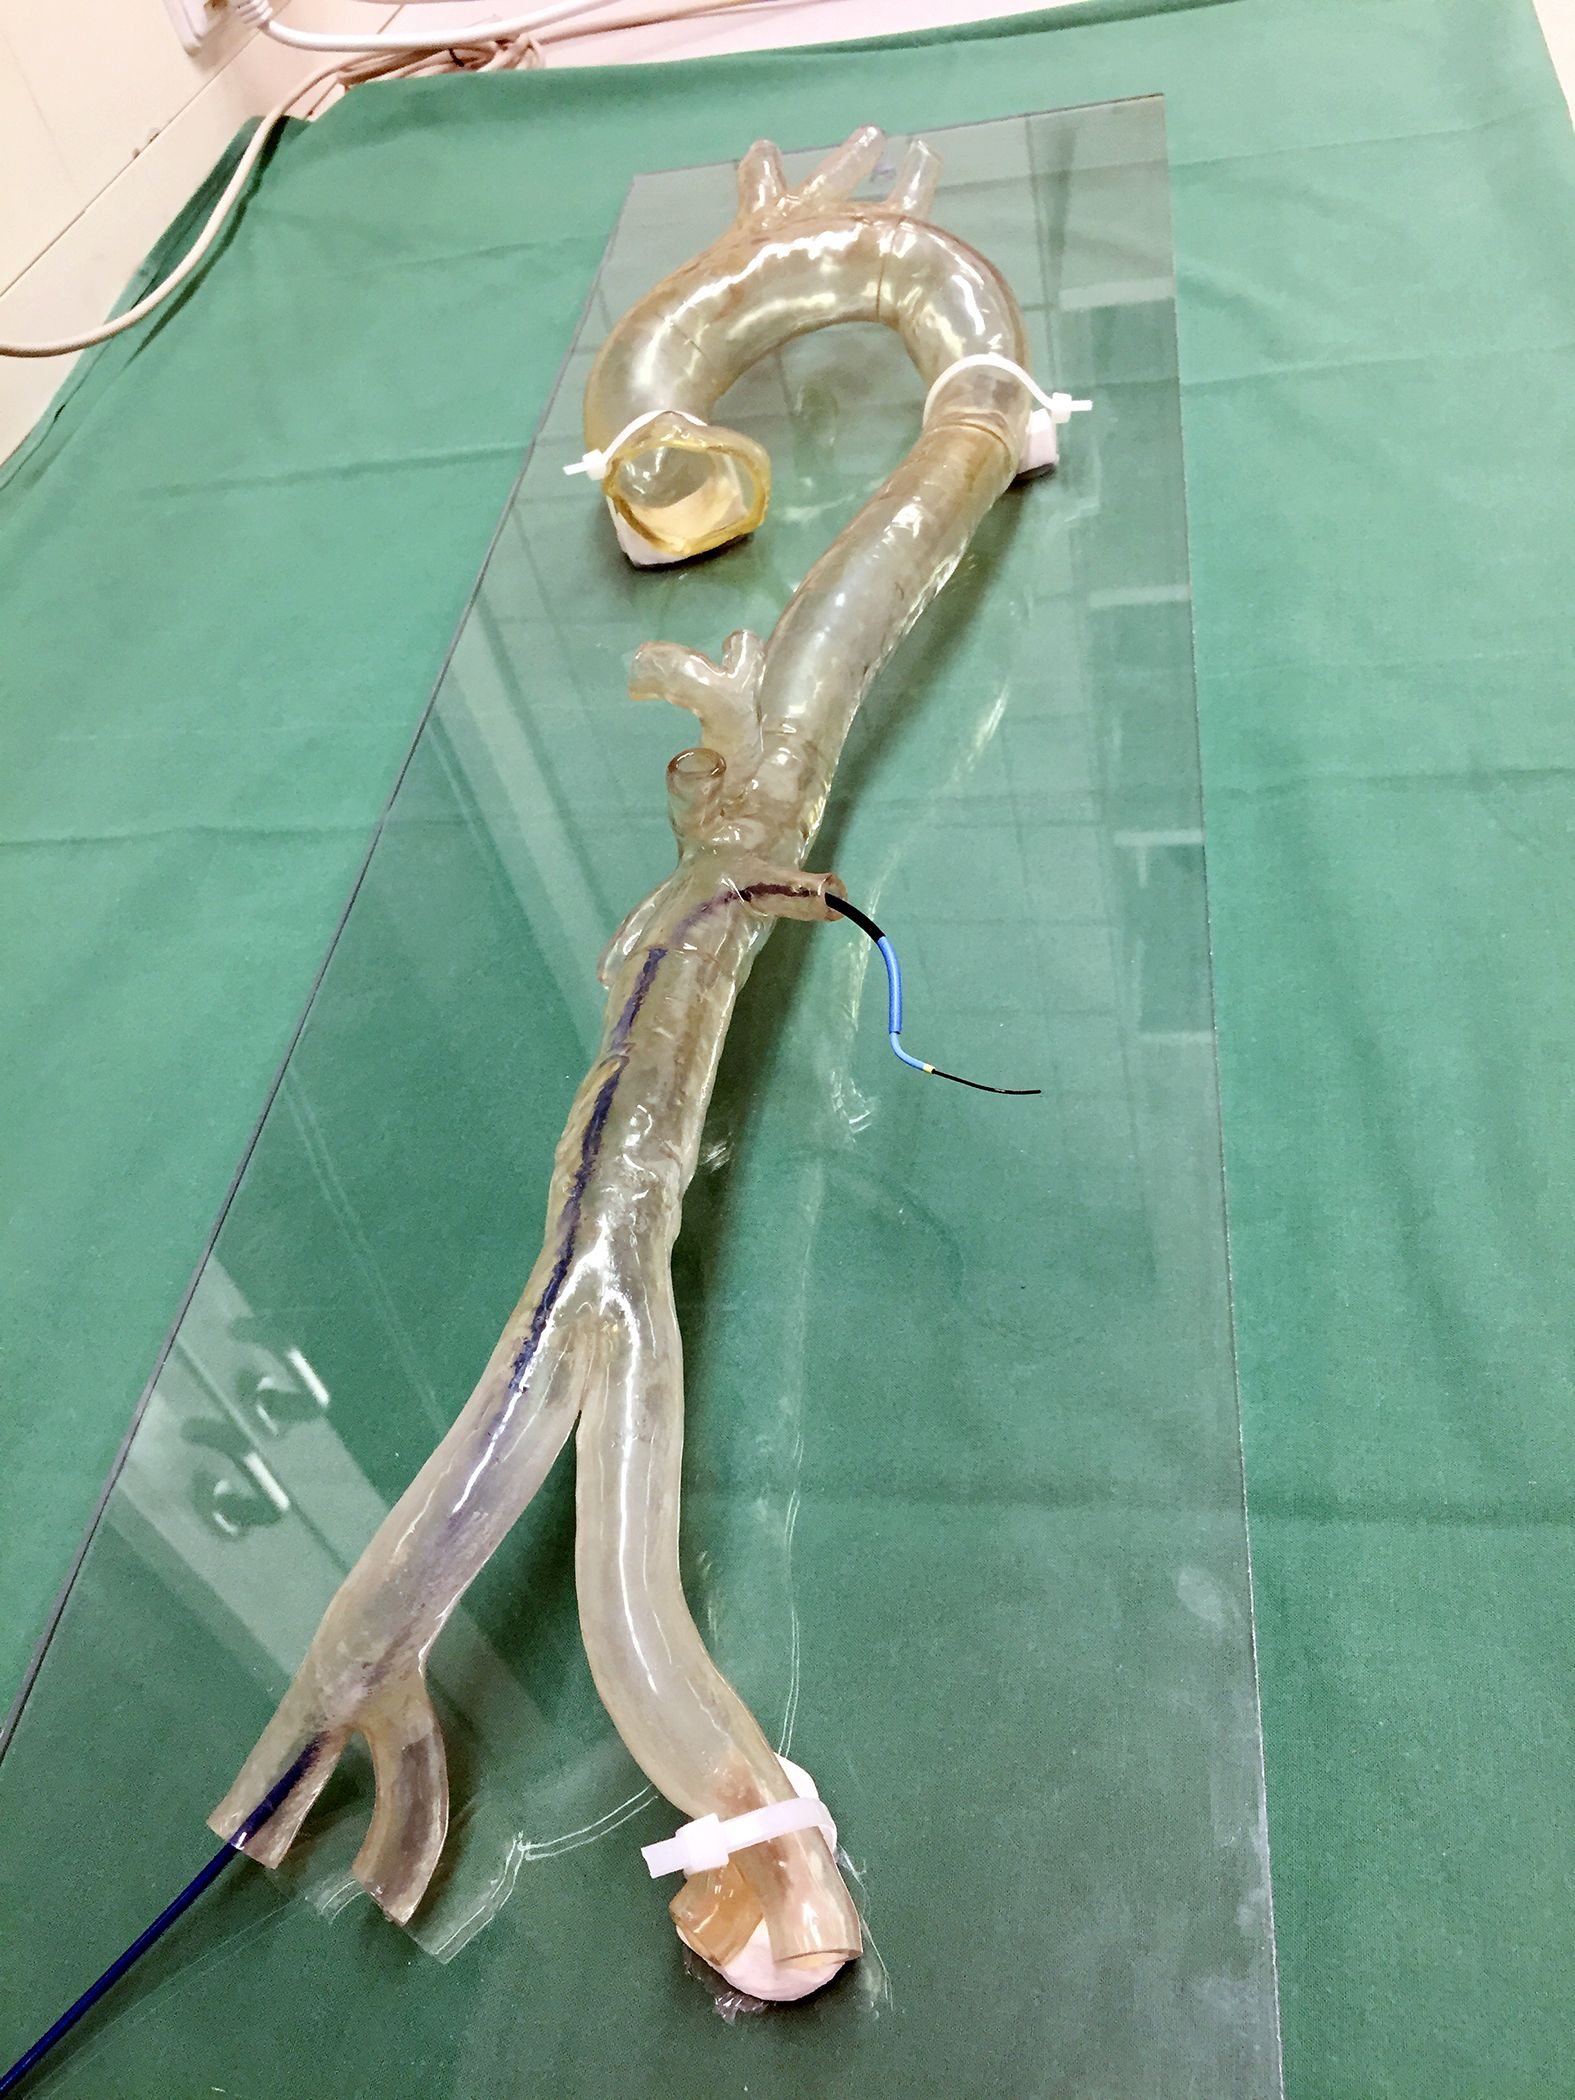 Transparent 3D printed model of a patient-specific aortic arch used by the University Hospital Mainz to practice complex endovascular surgeries.